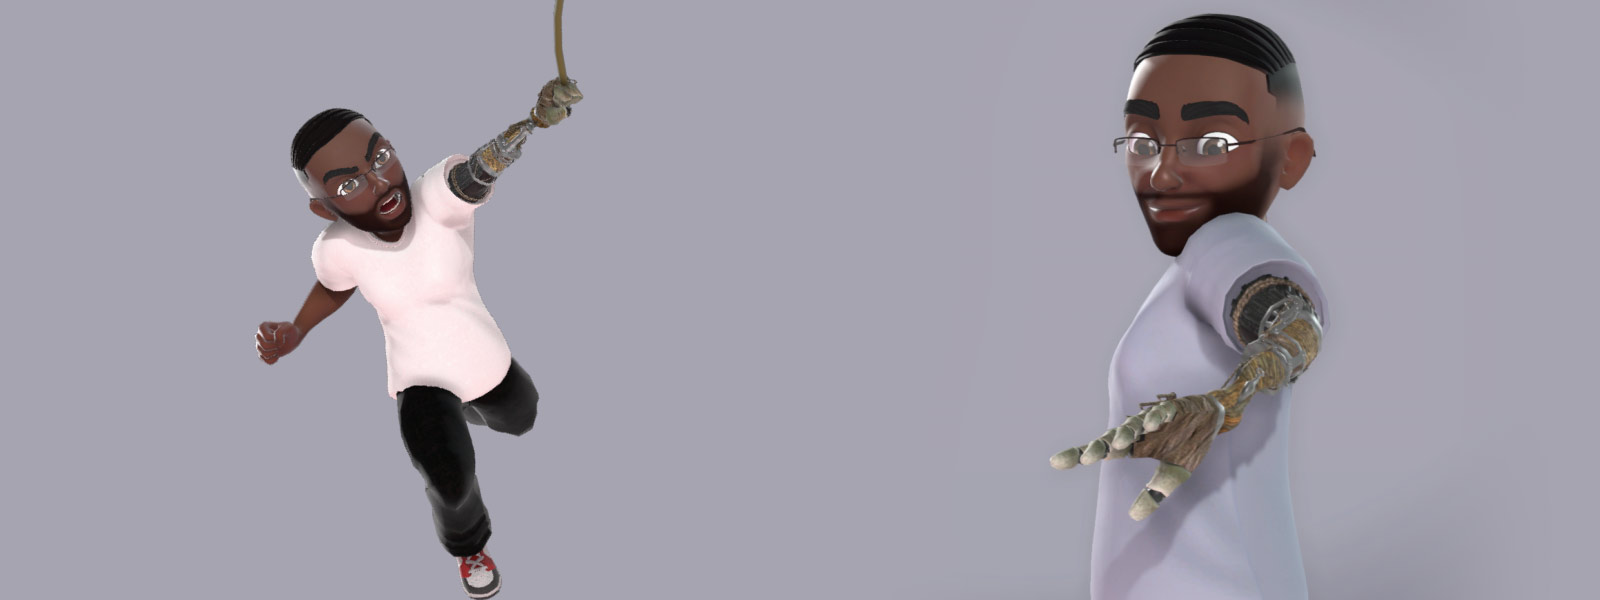 One Xbox avatar character looks at his Prosthetic Arm and the other swings from the arm